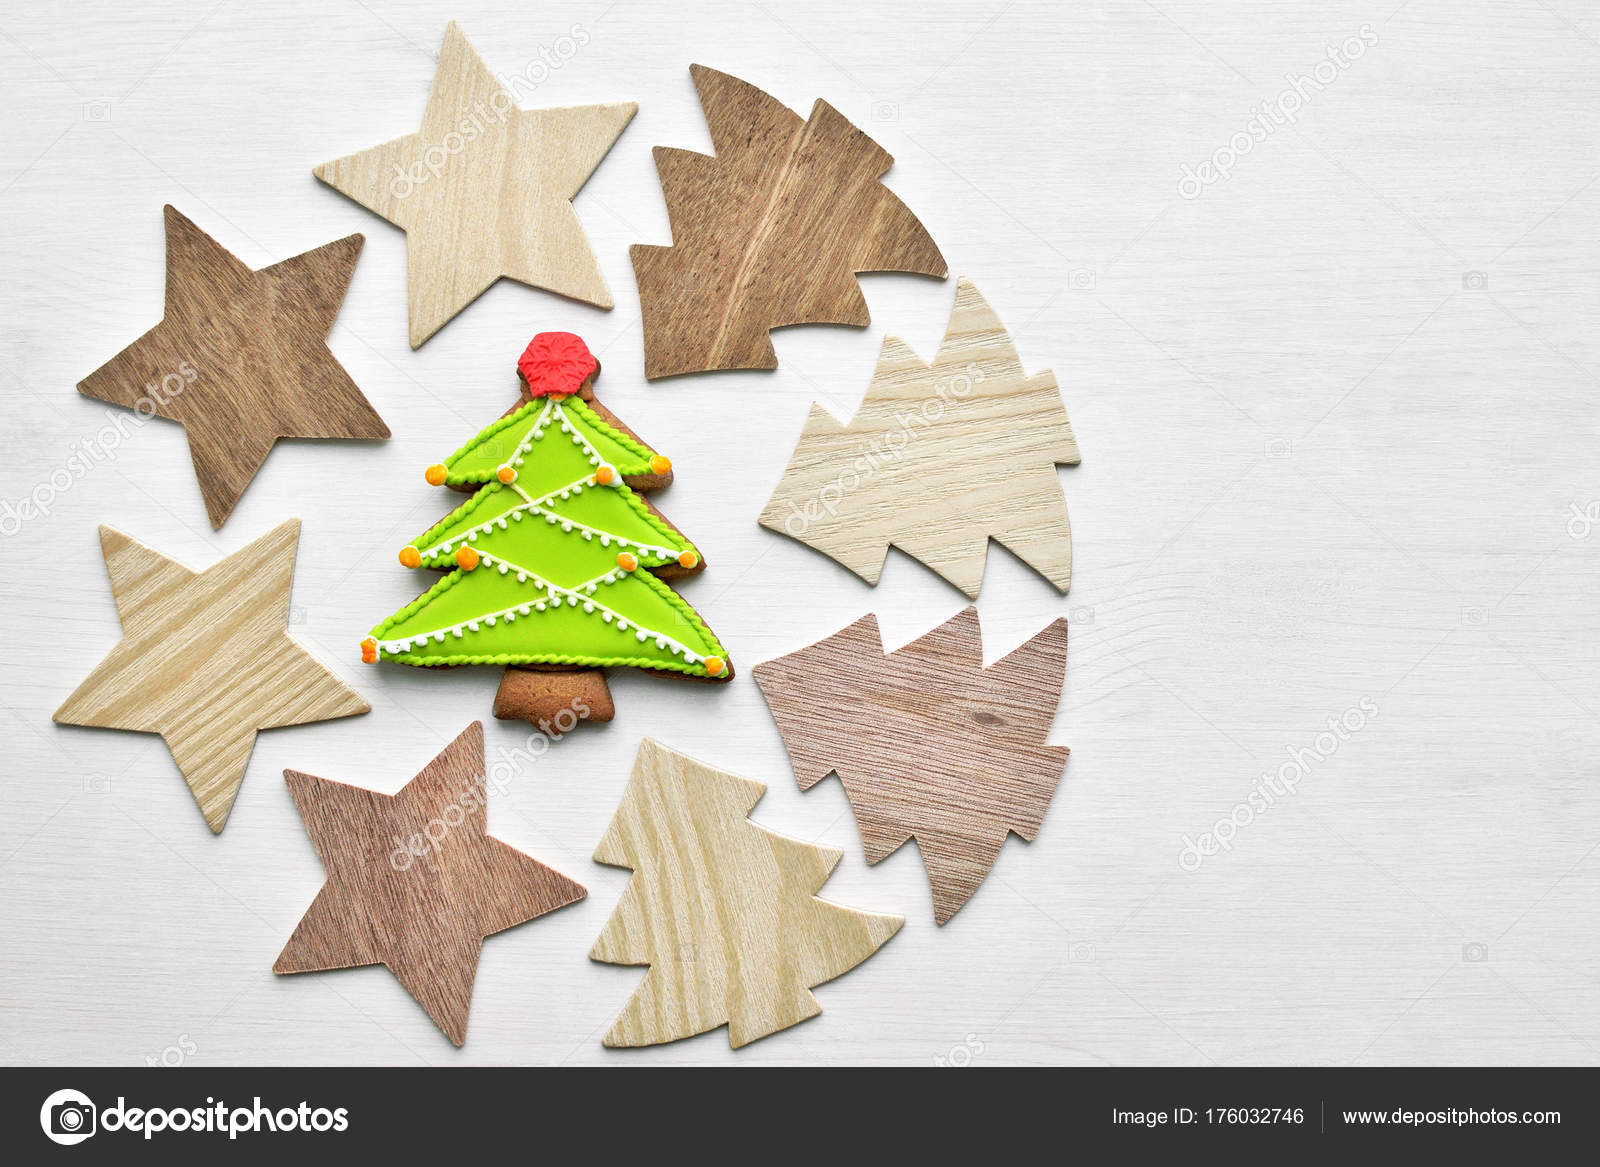 wooden christmas trees and stars background baked gingerbread glazed cookies new year decoration background top view space for text photo by nikavera